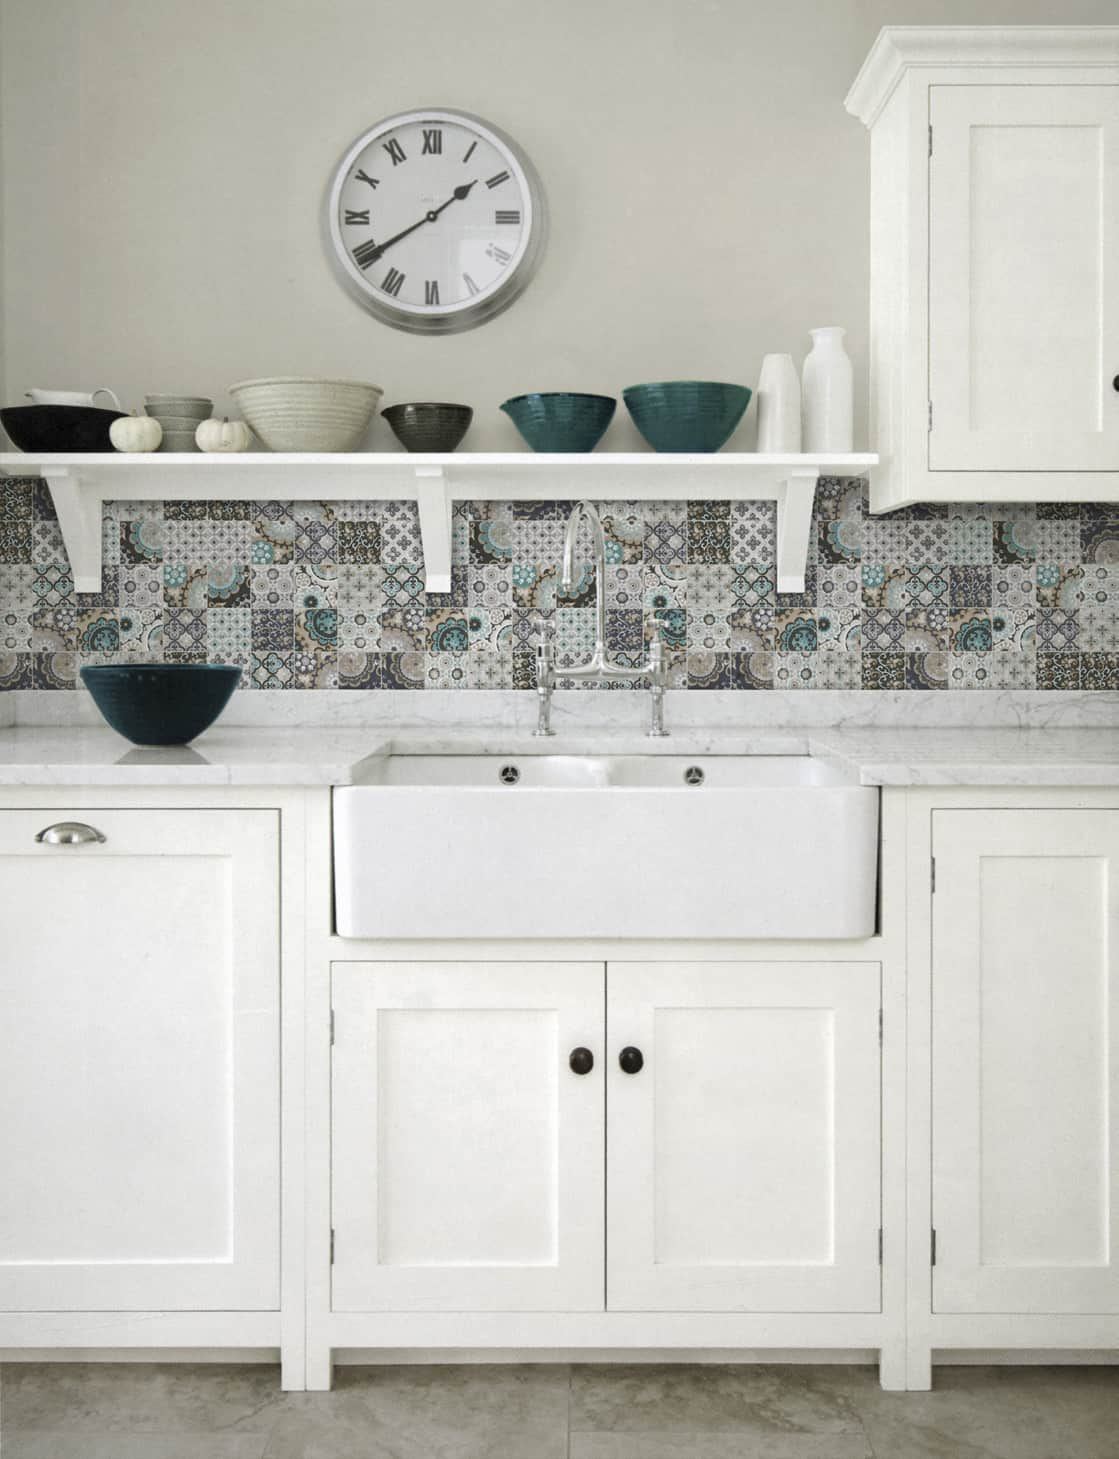 - Patchwork Backsplash For Country Style Kitchen Ideas - Homestead